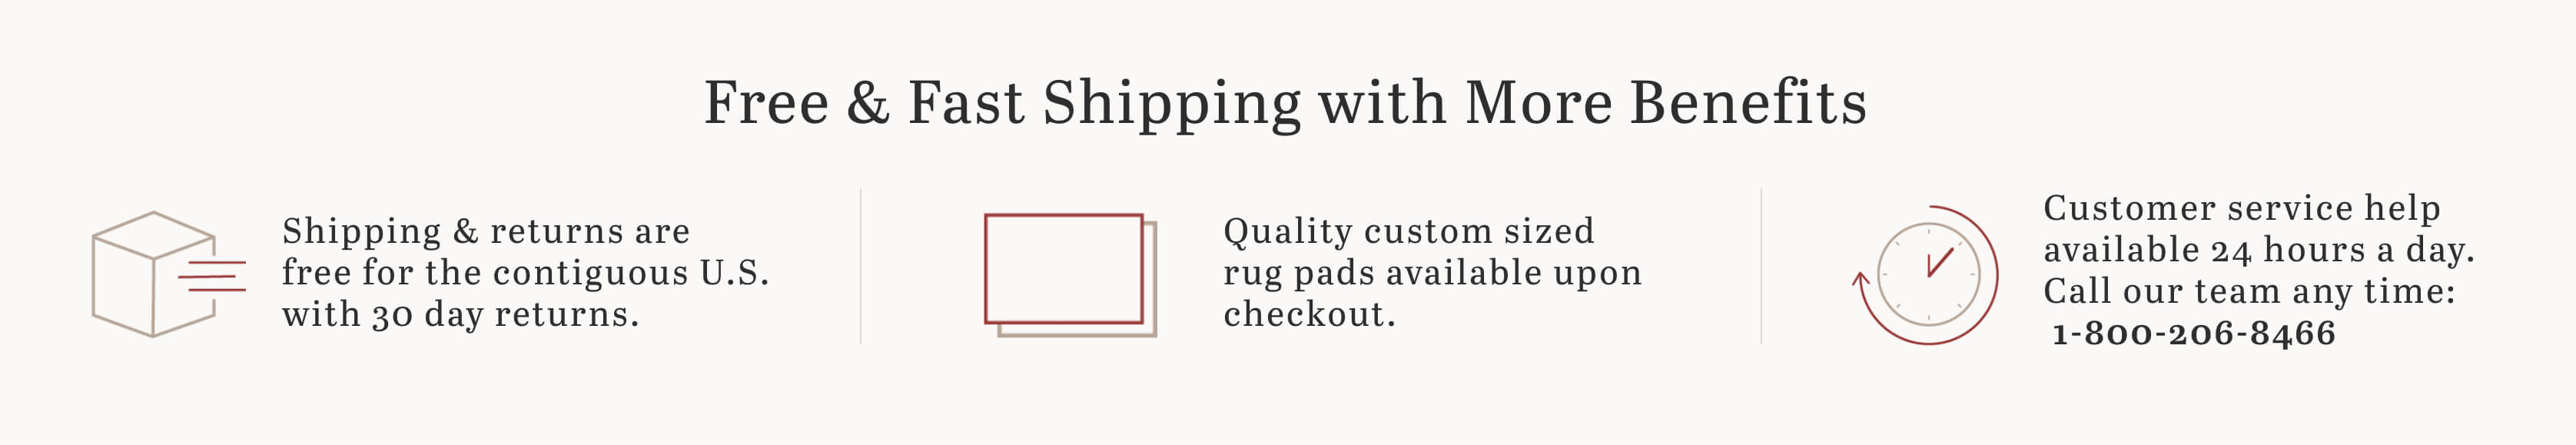 Fast & Free Shipping Image